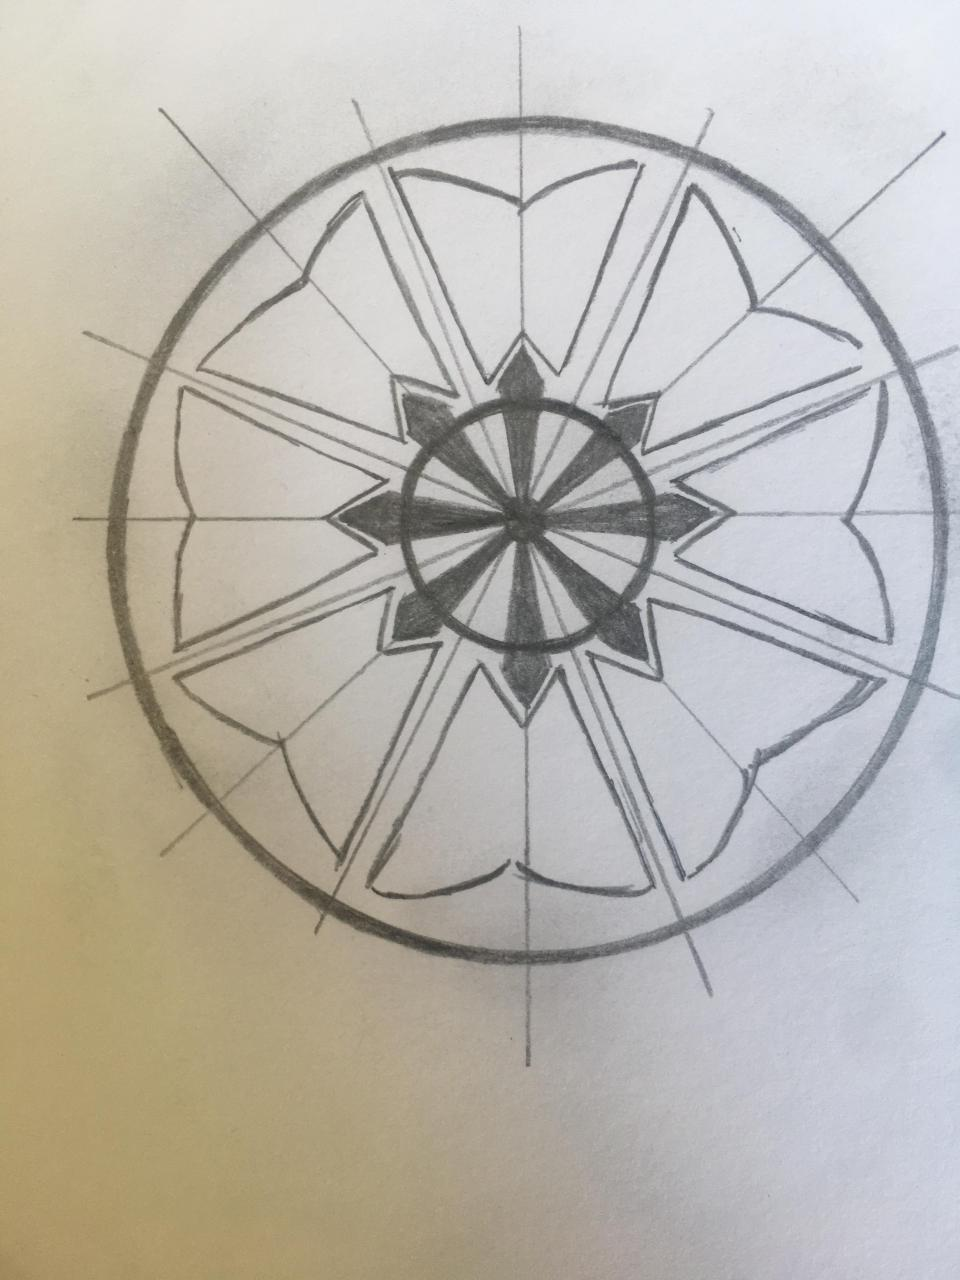 Looking for help in order to make this design completely geometrically balanced - order of the white lotus from ATLA with the eightfold path in the middle (lines are just scaffolding and don't need to be included on final design)